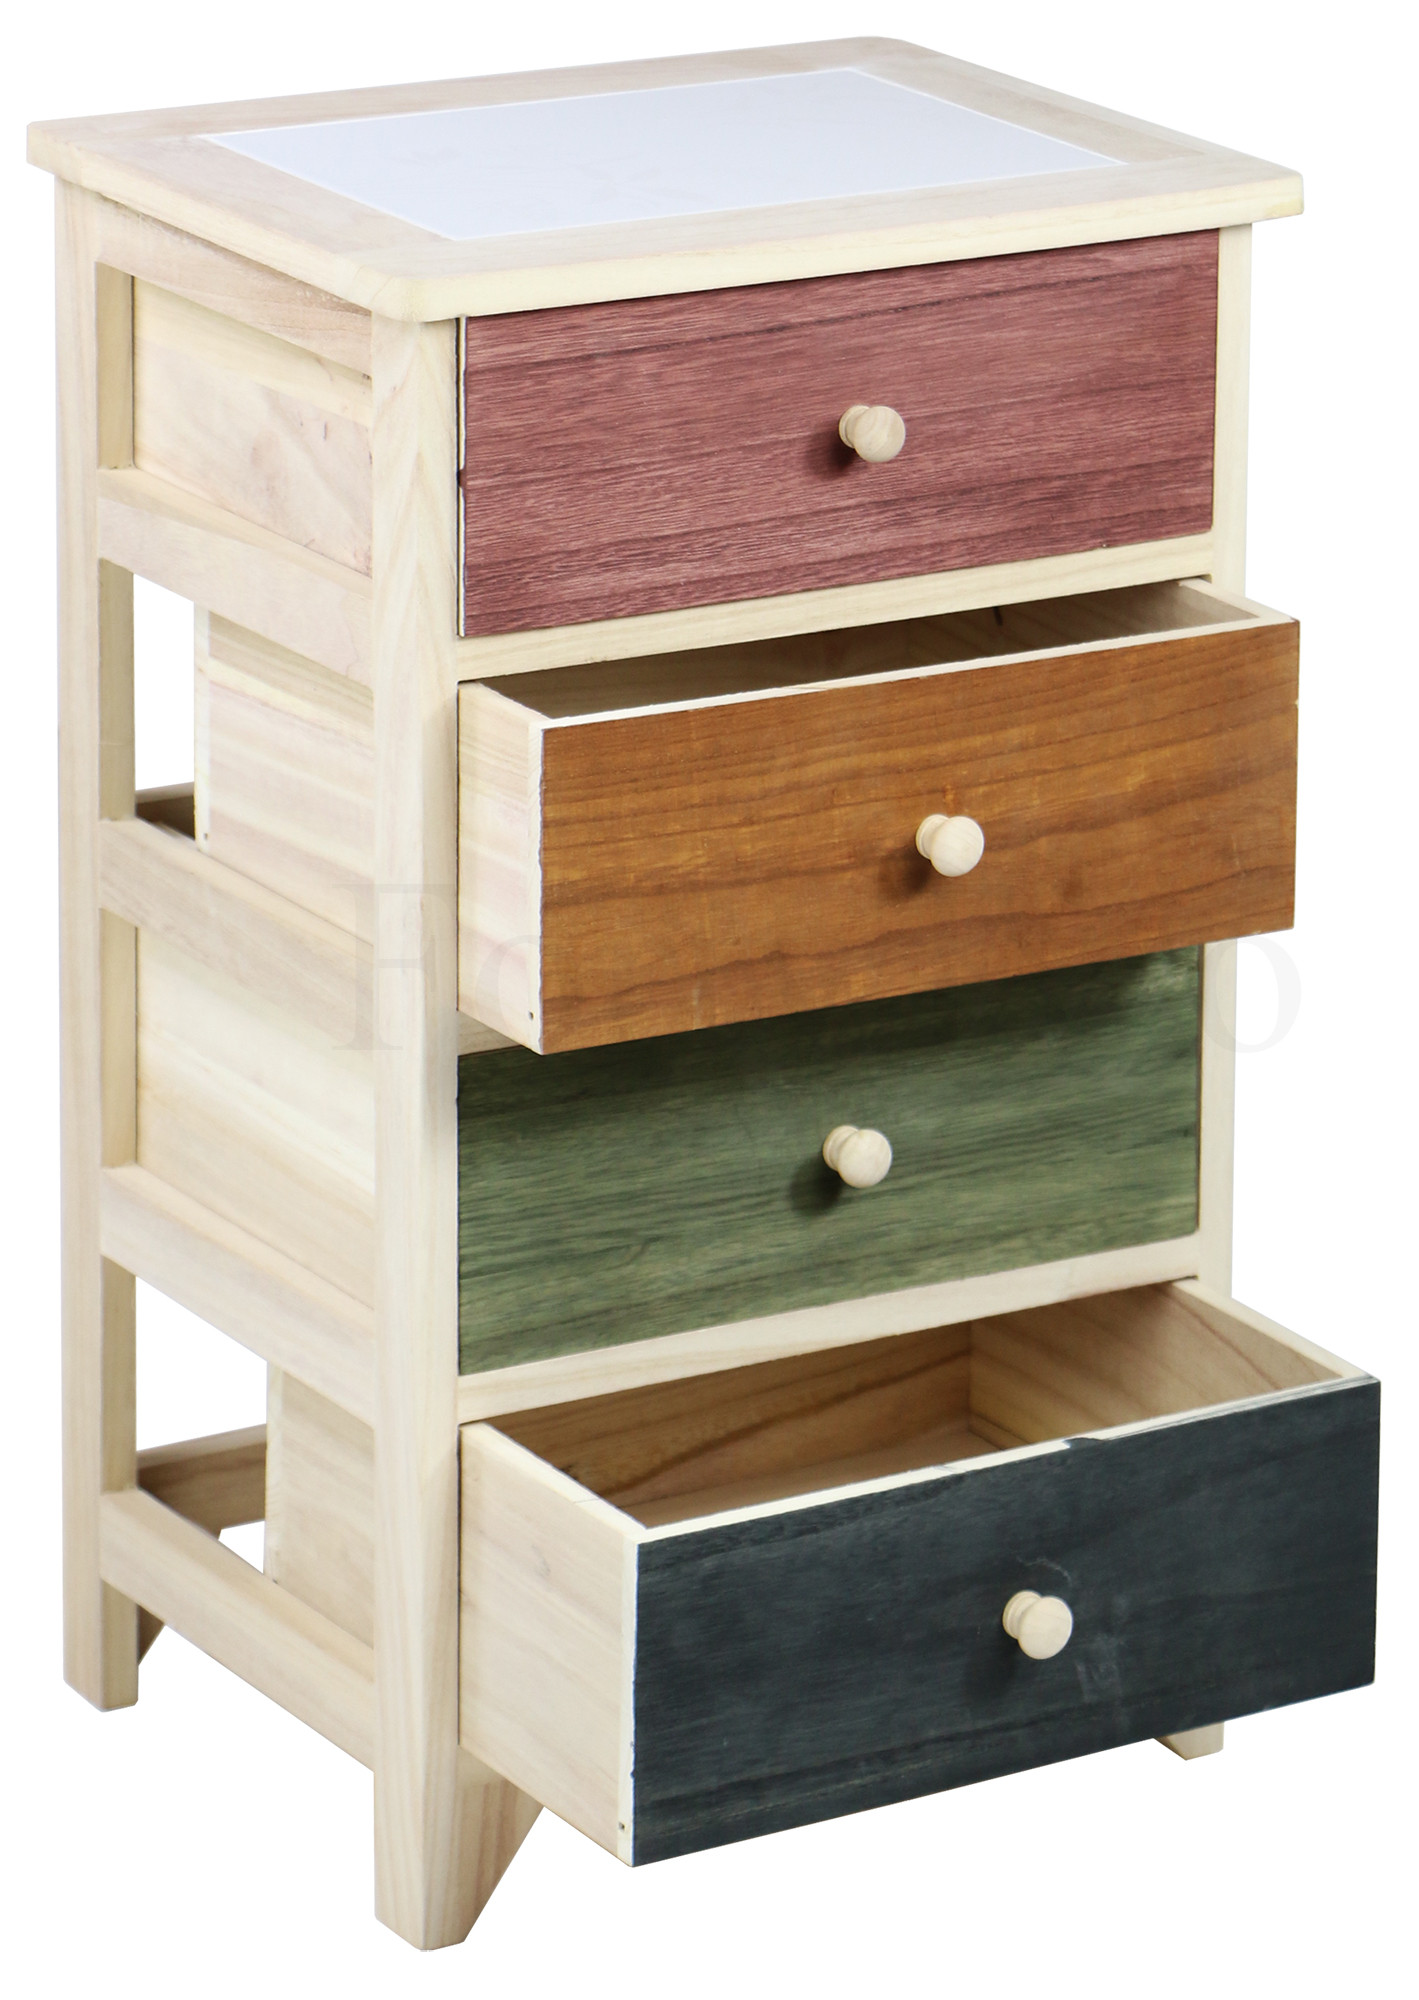 shabby chic 4 drawer hand crafted cabinet furniture home d cor fortytwo. Black Bedroom Furniture Sets. Home Design Ideas